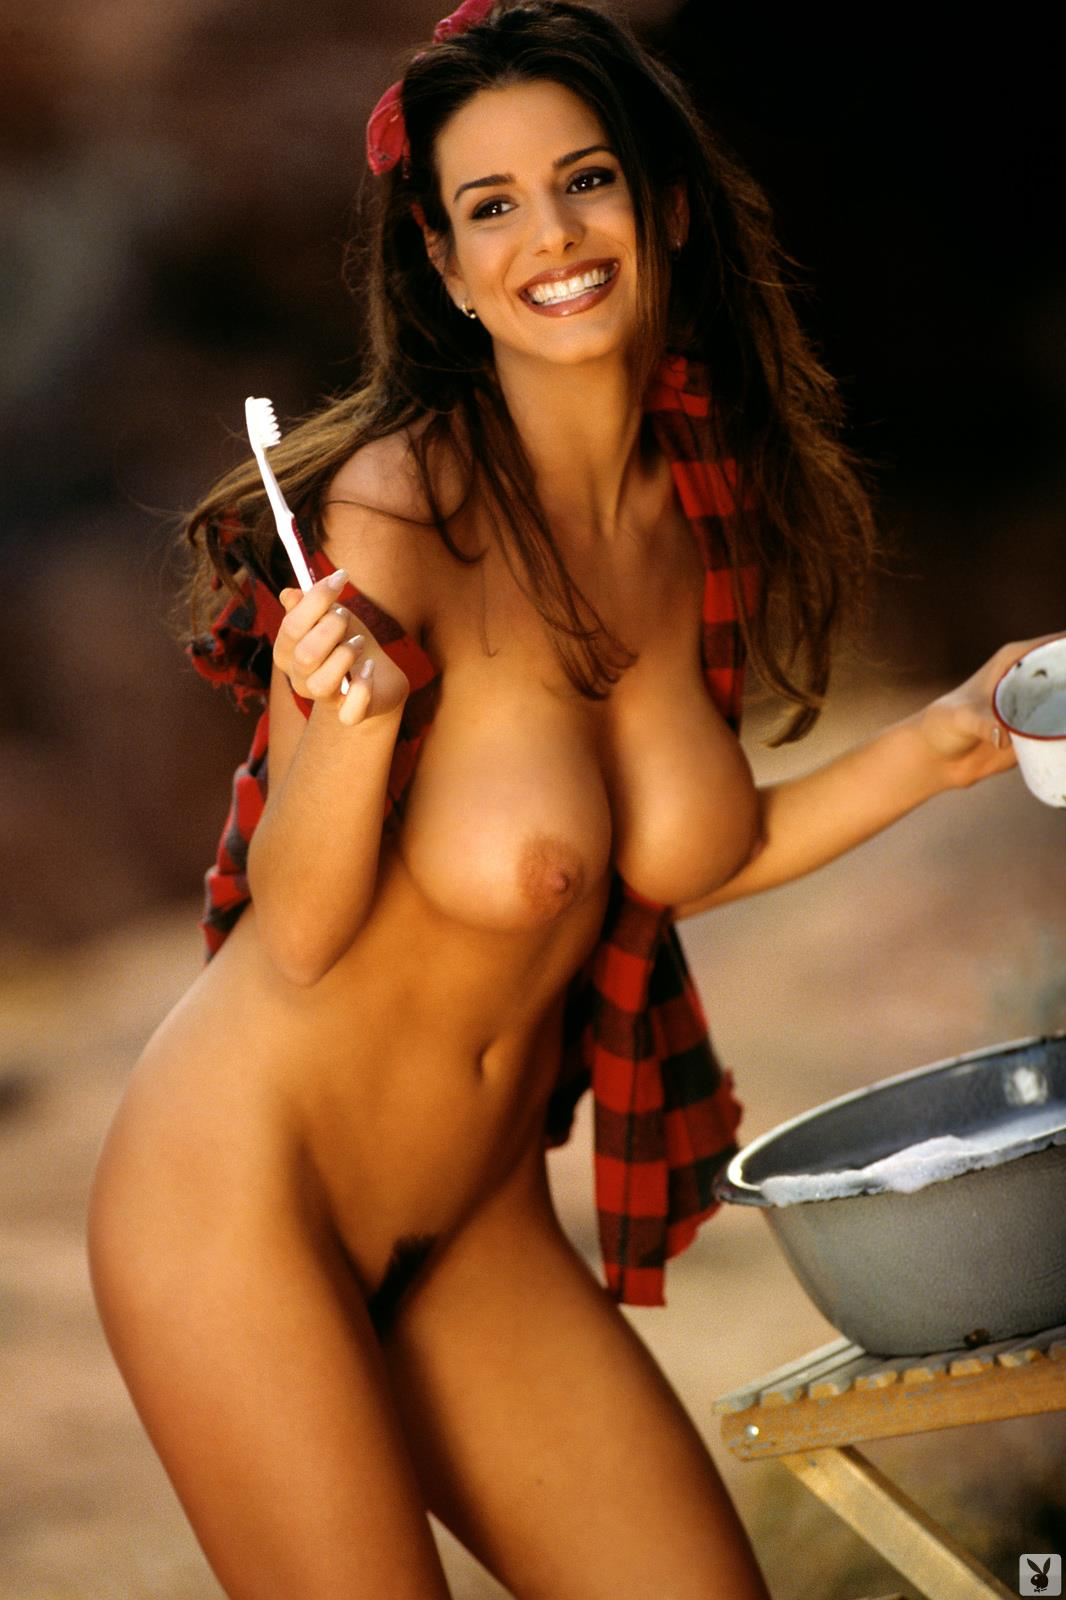 Tishara Lee Cousino Nude Pictures. Rating = 9.13/10